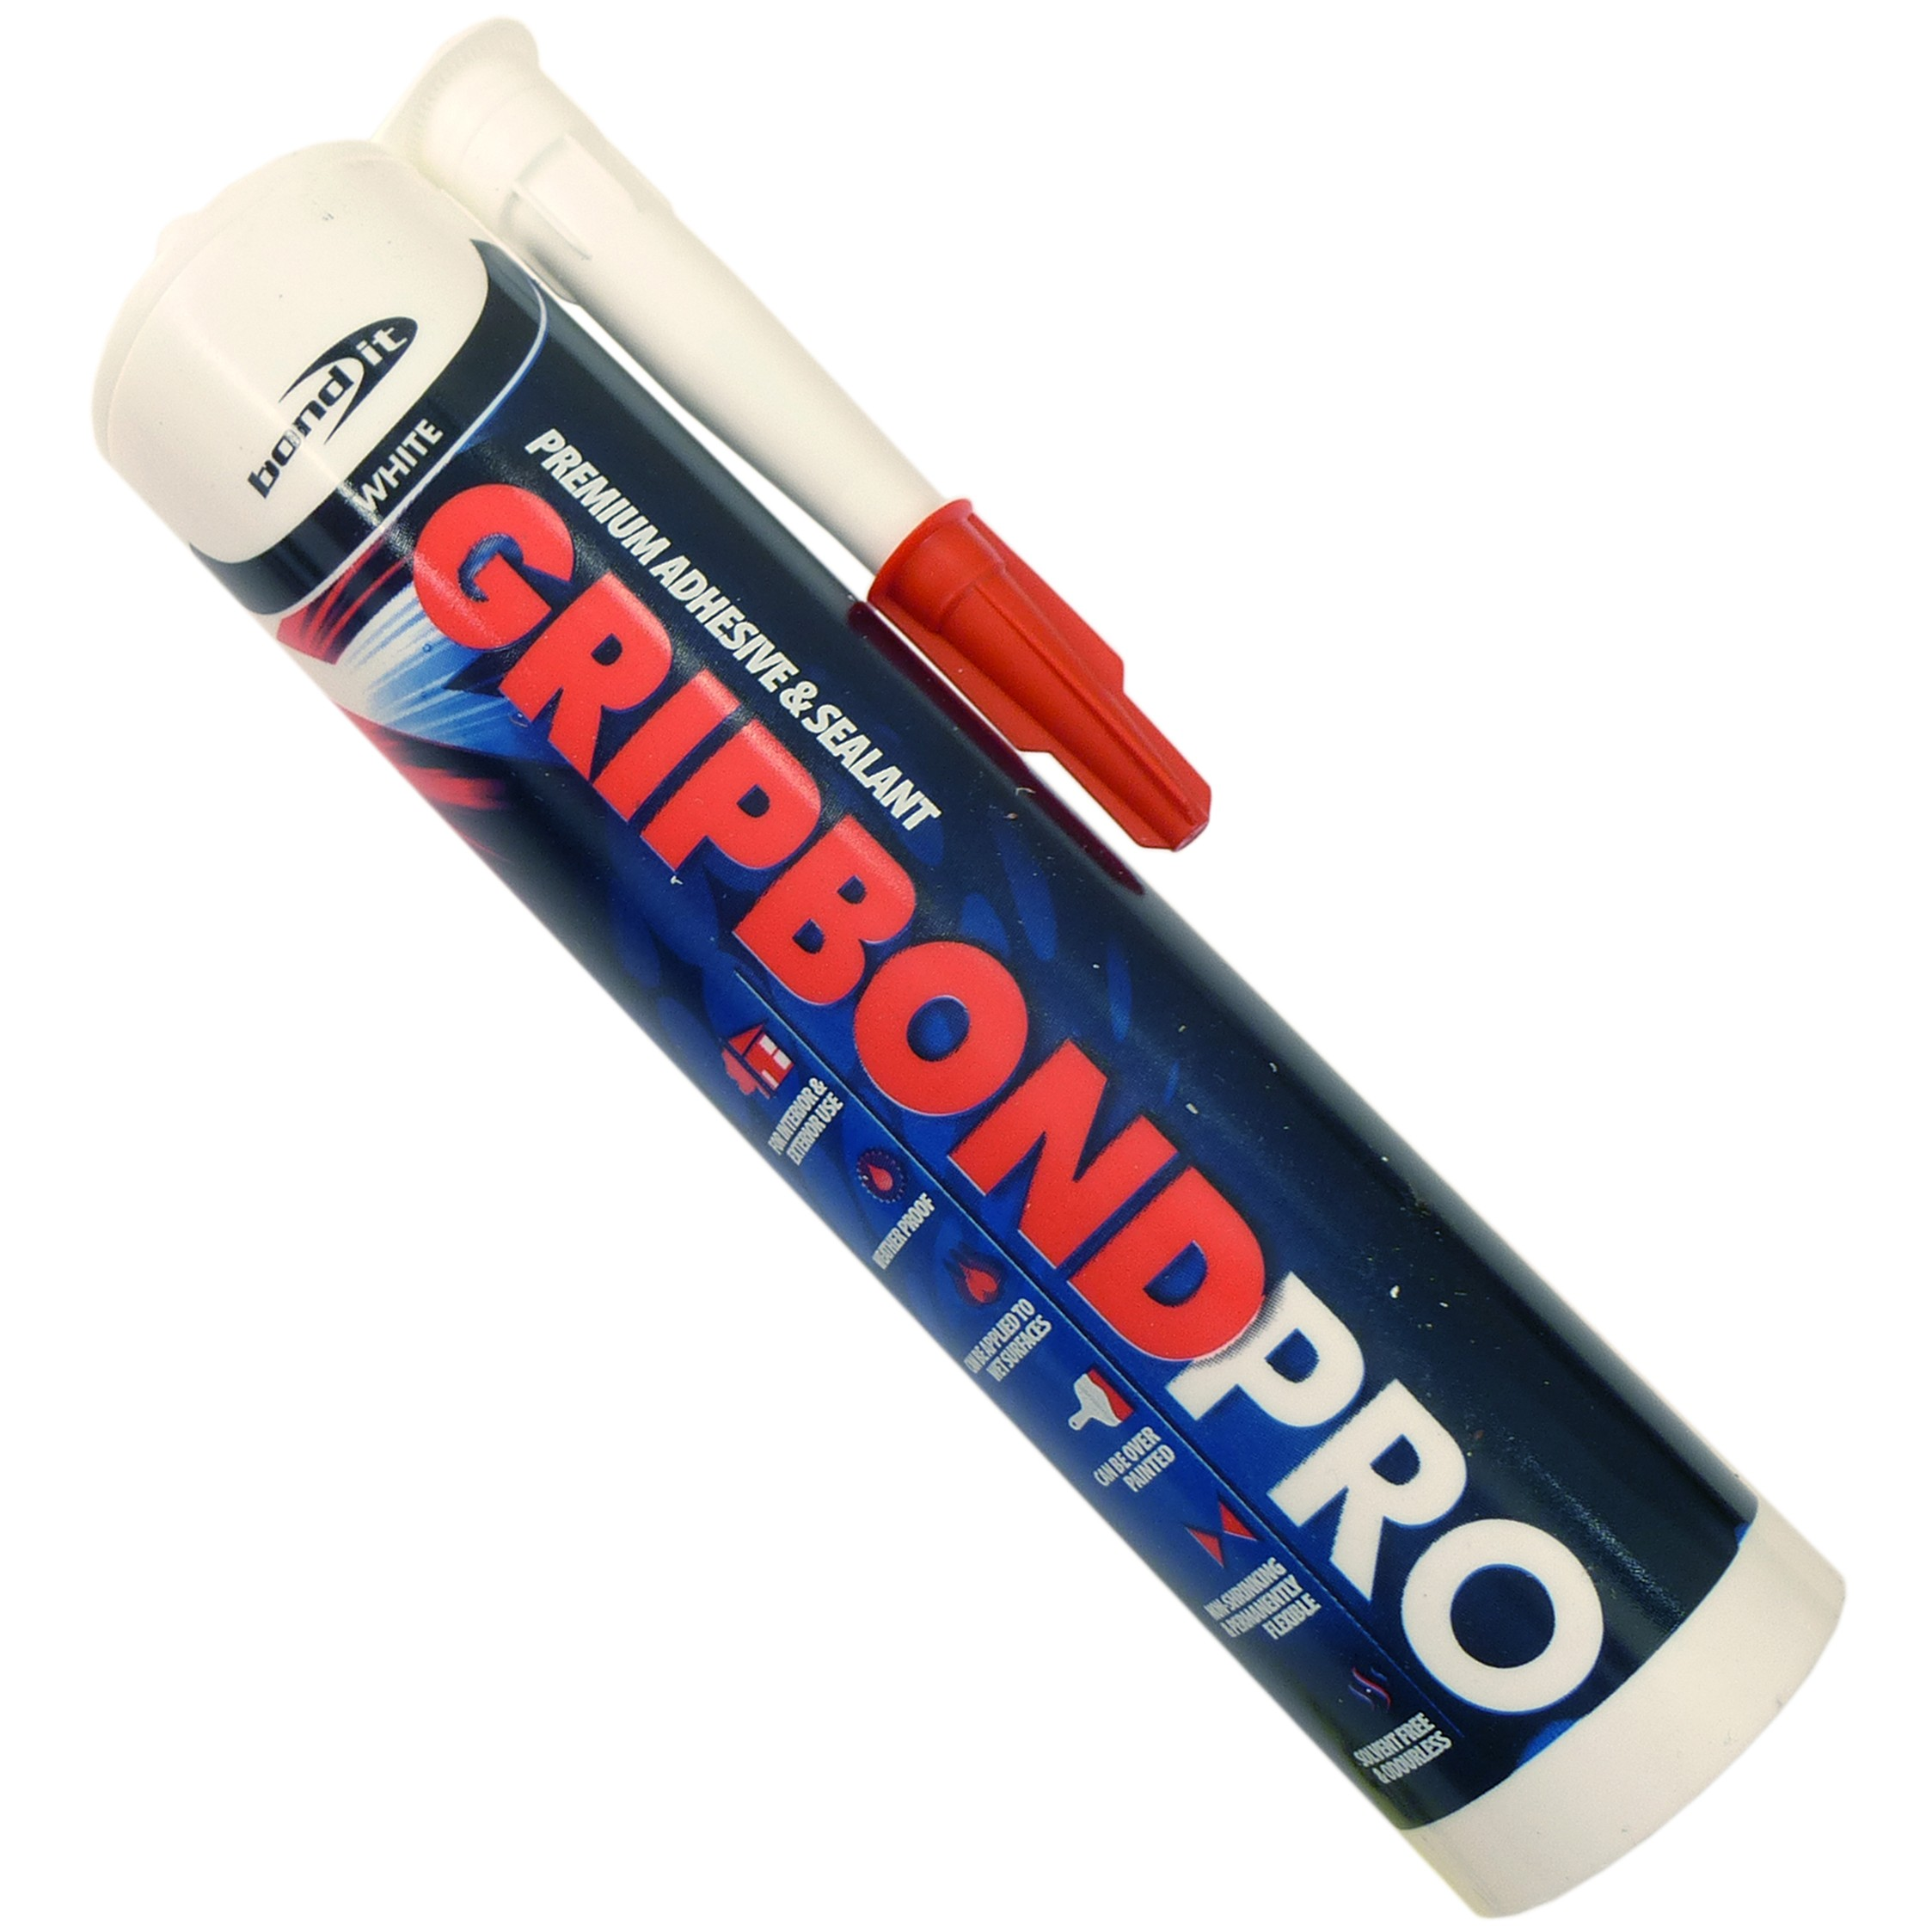 Bond It G B Pro Hybrid Polymer Silicone - White, 290ml